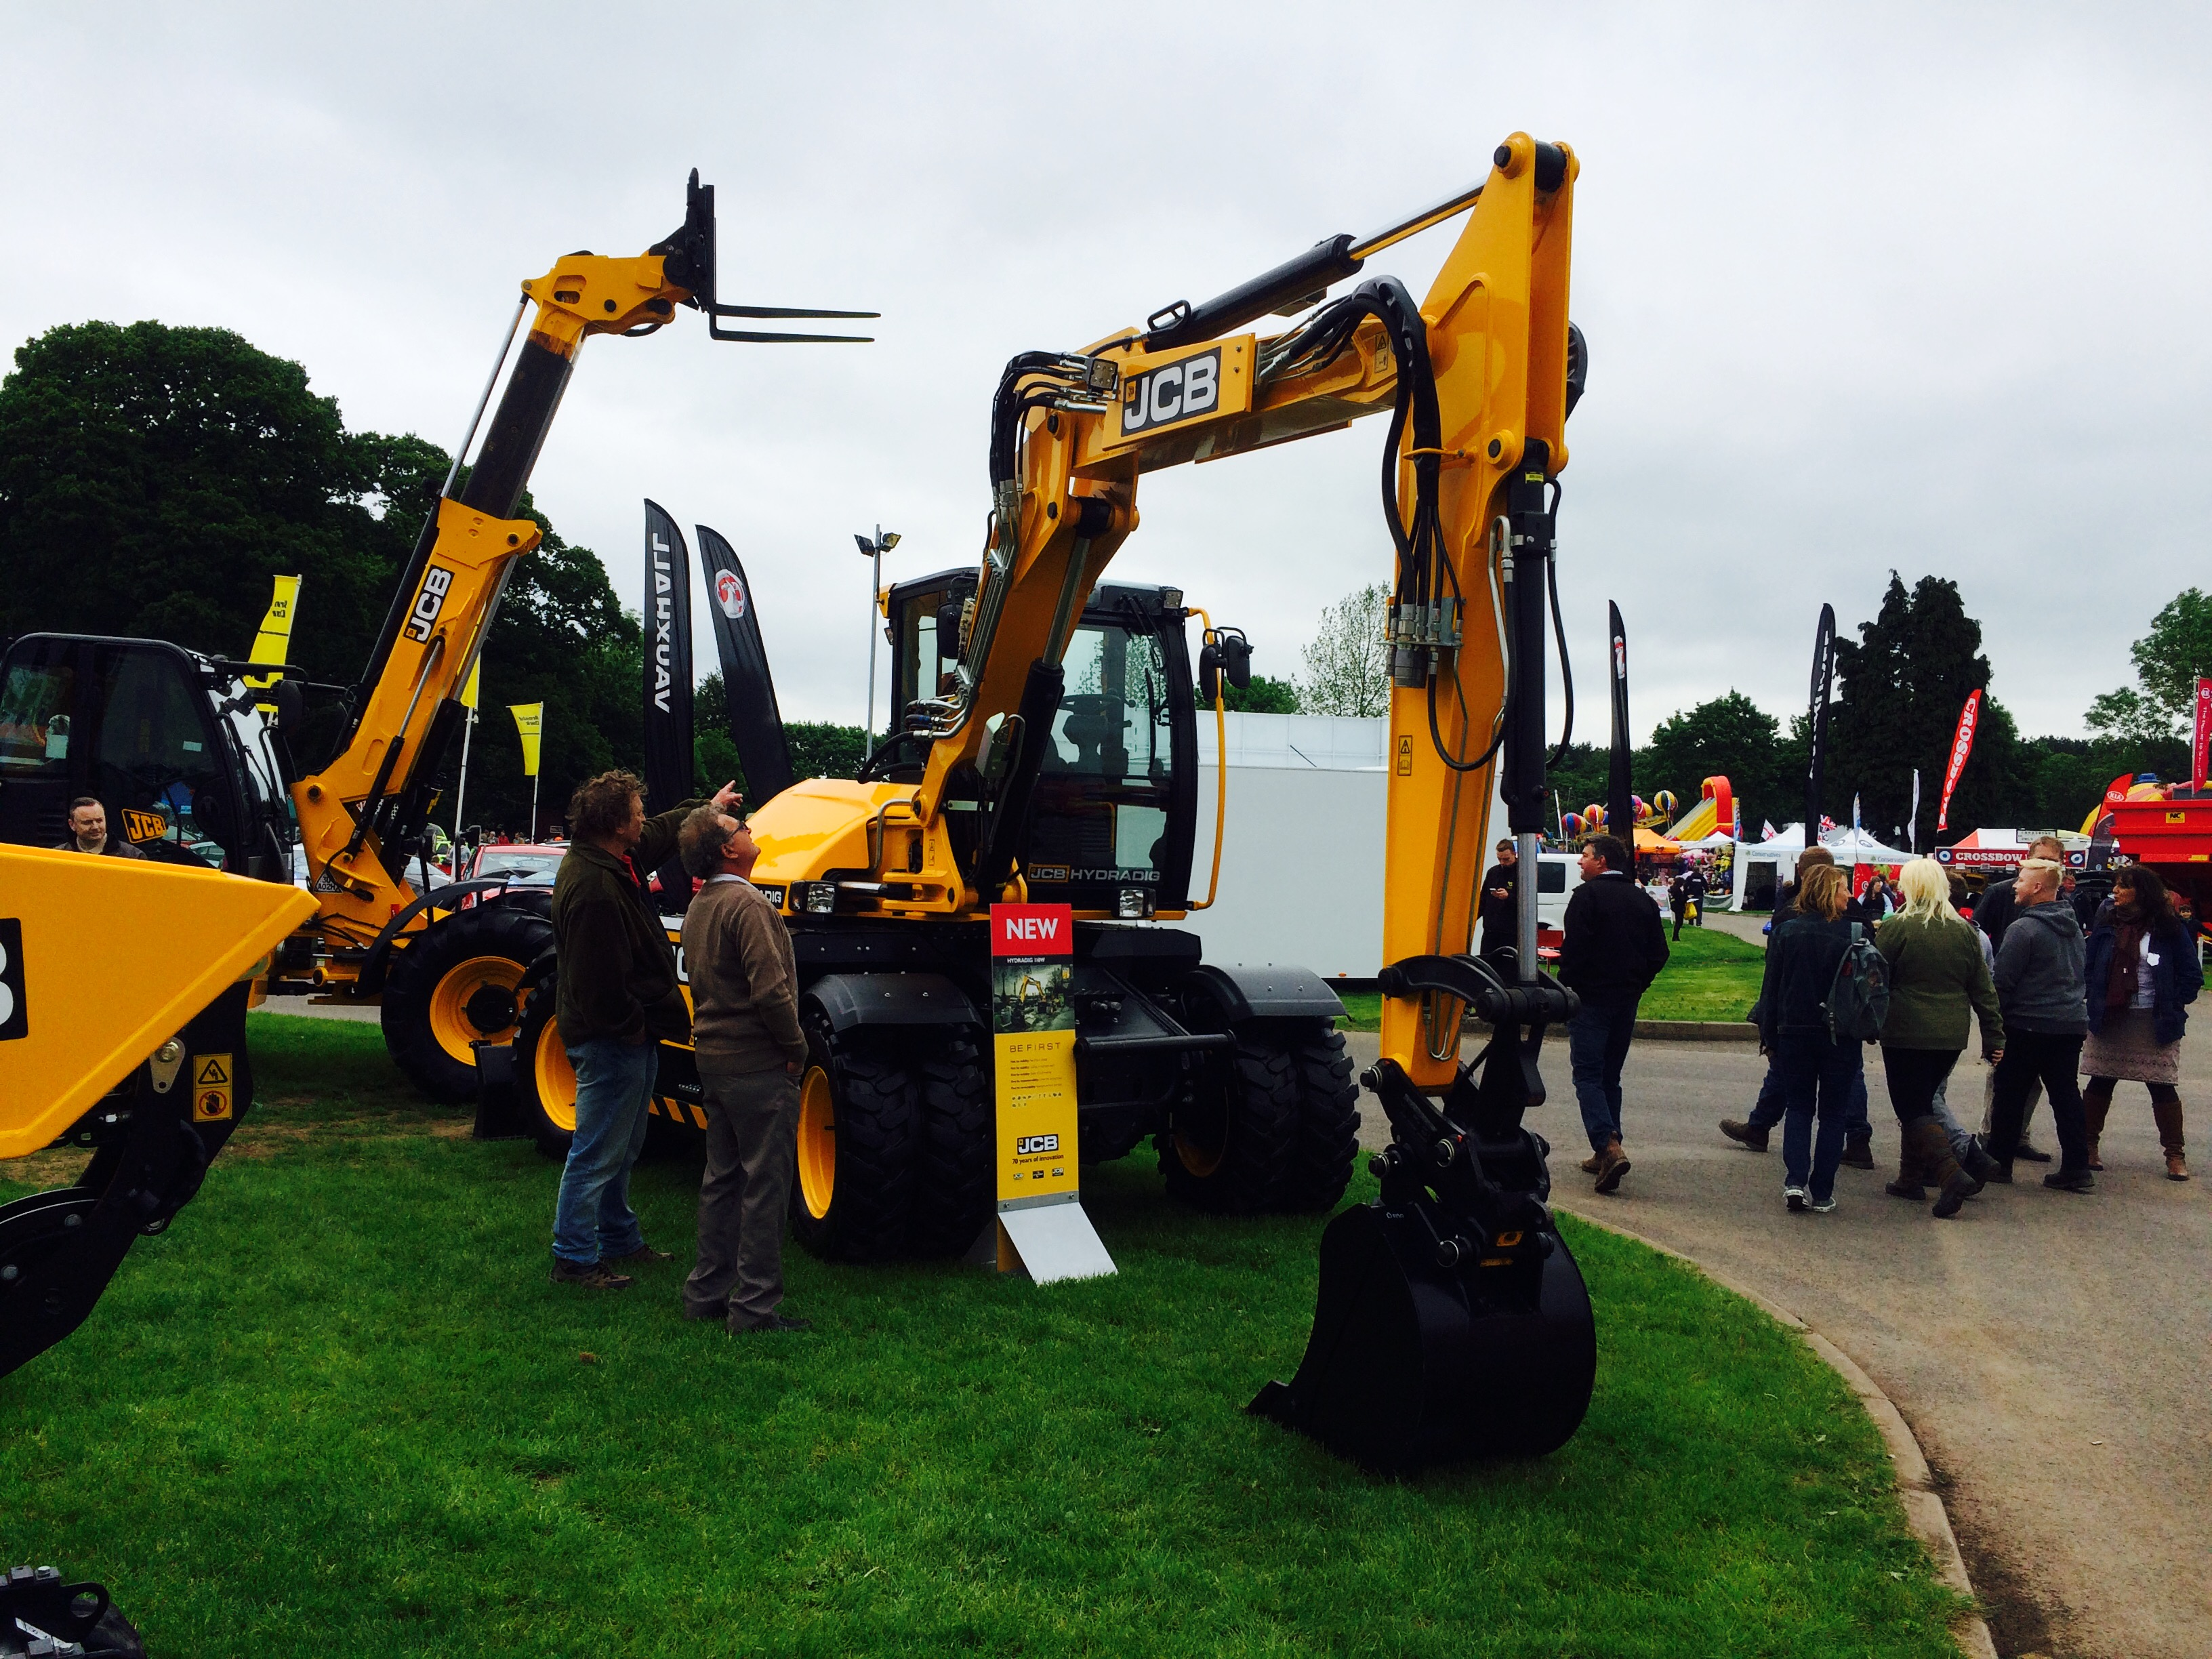 Hydradig at show 8